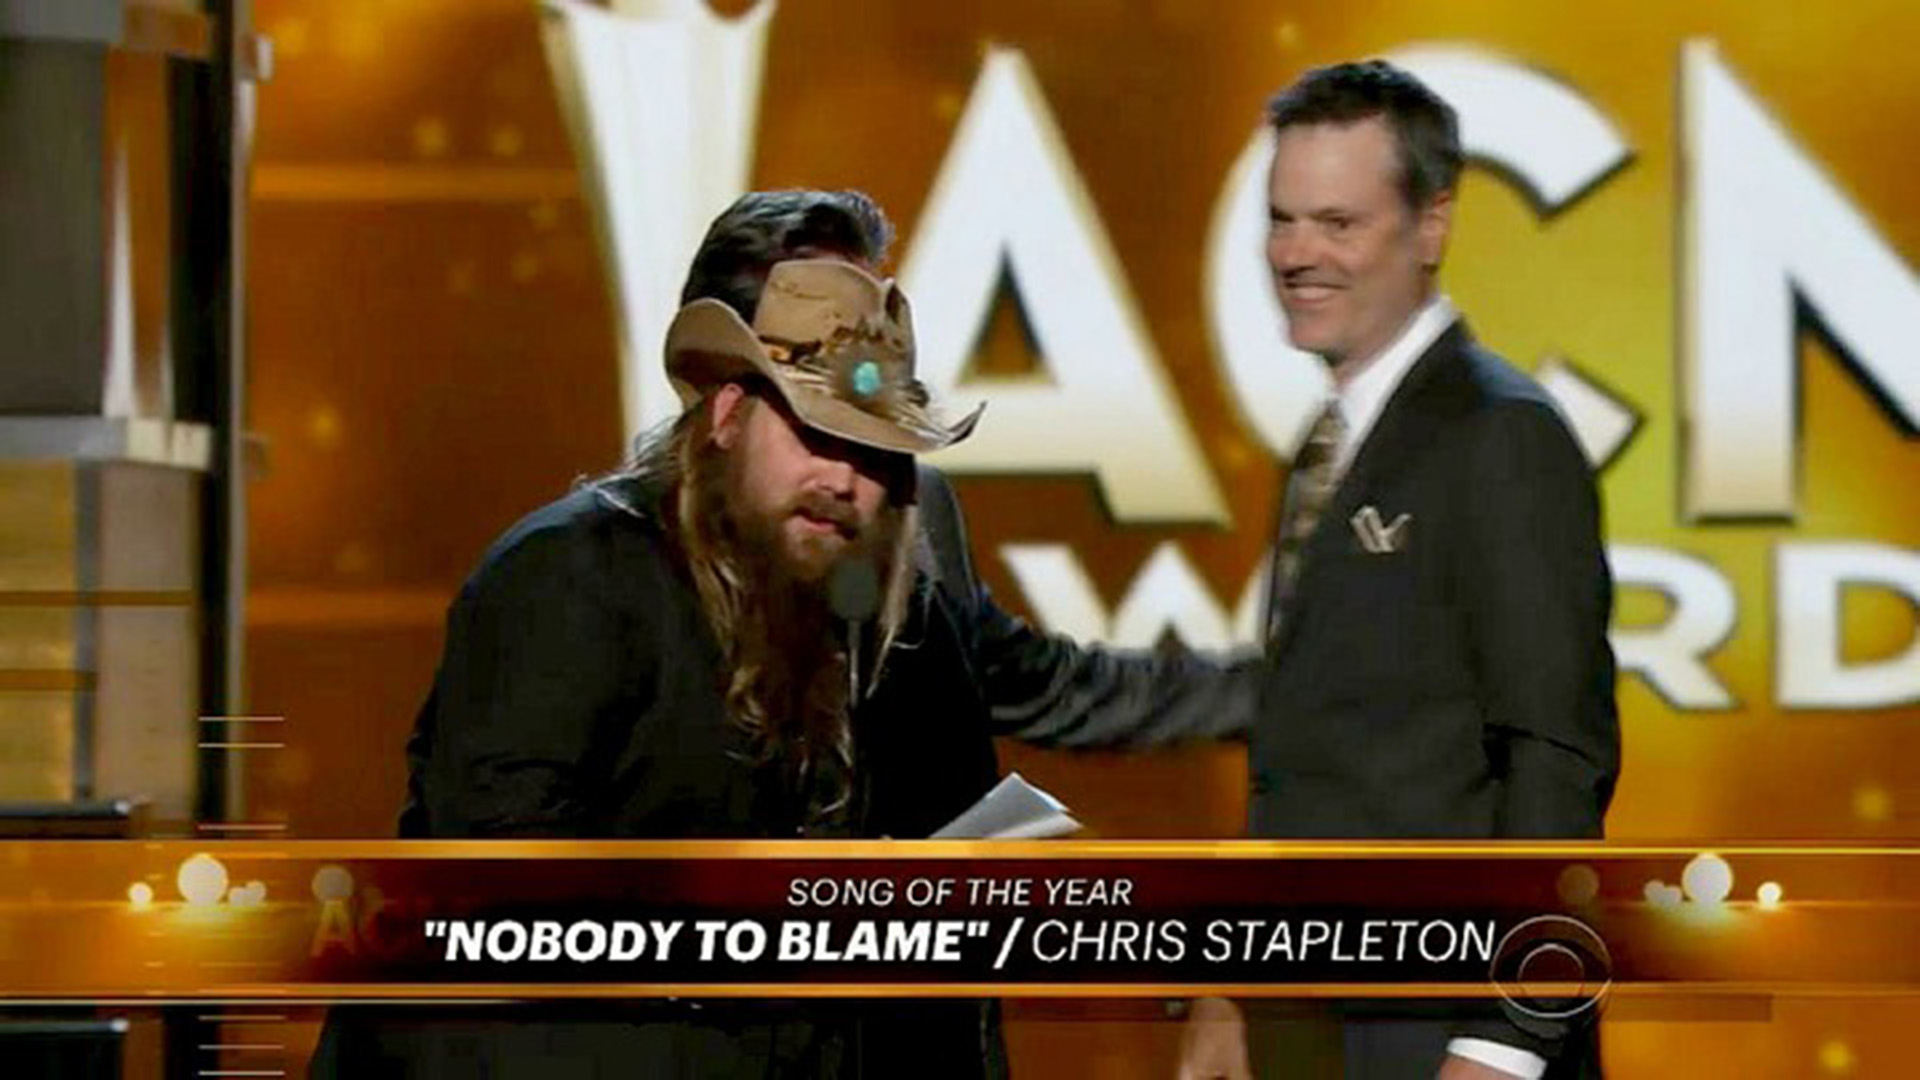 Chris Stapleton: Song Of The Year